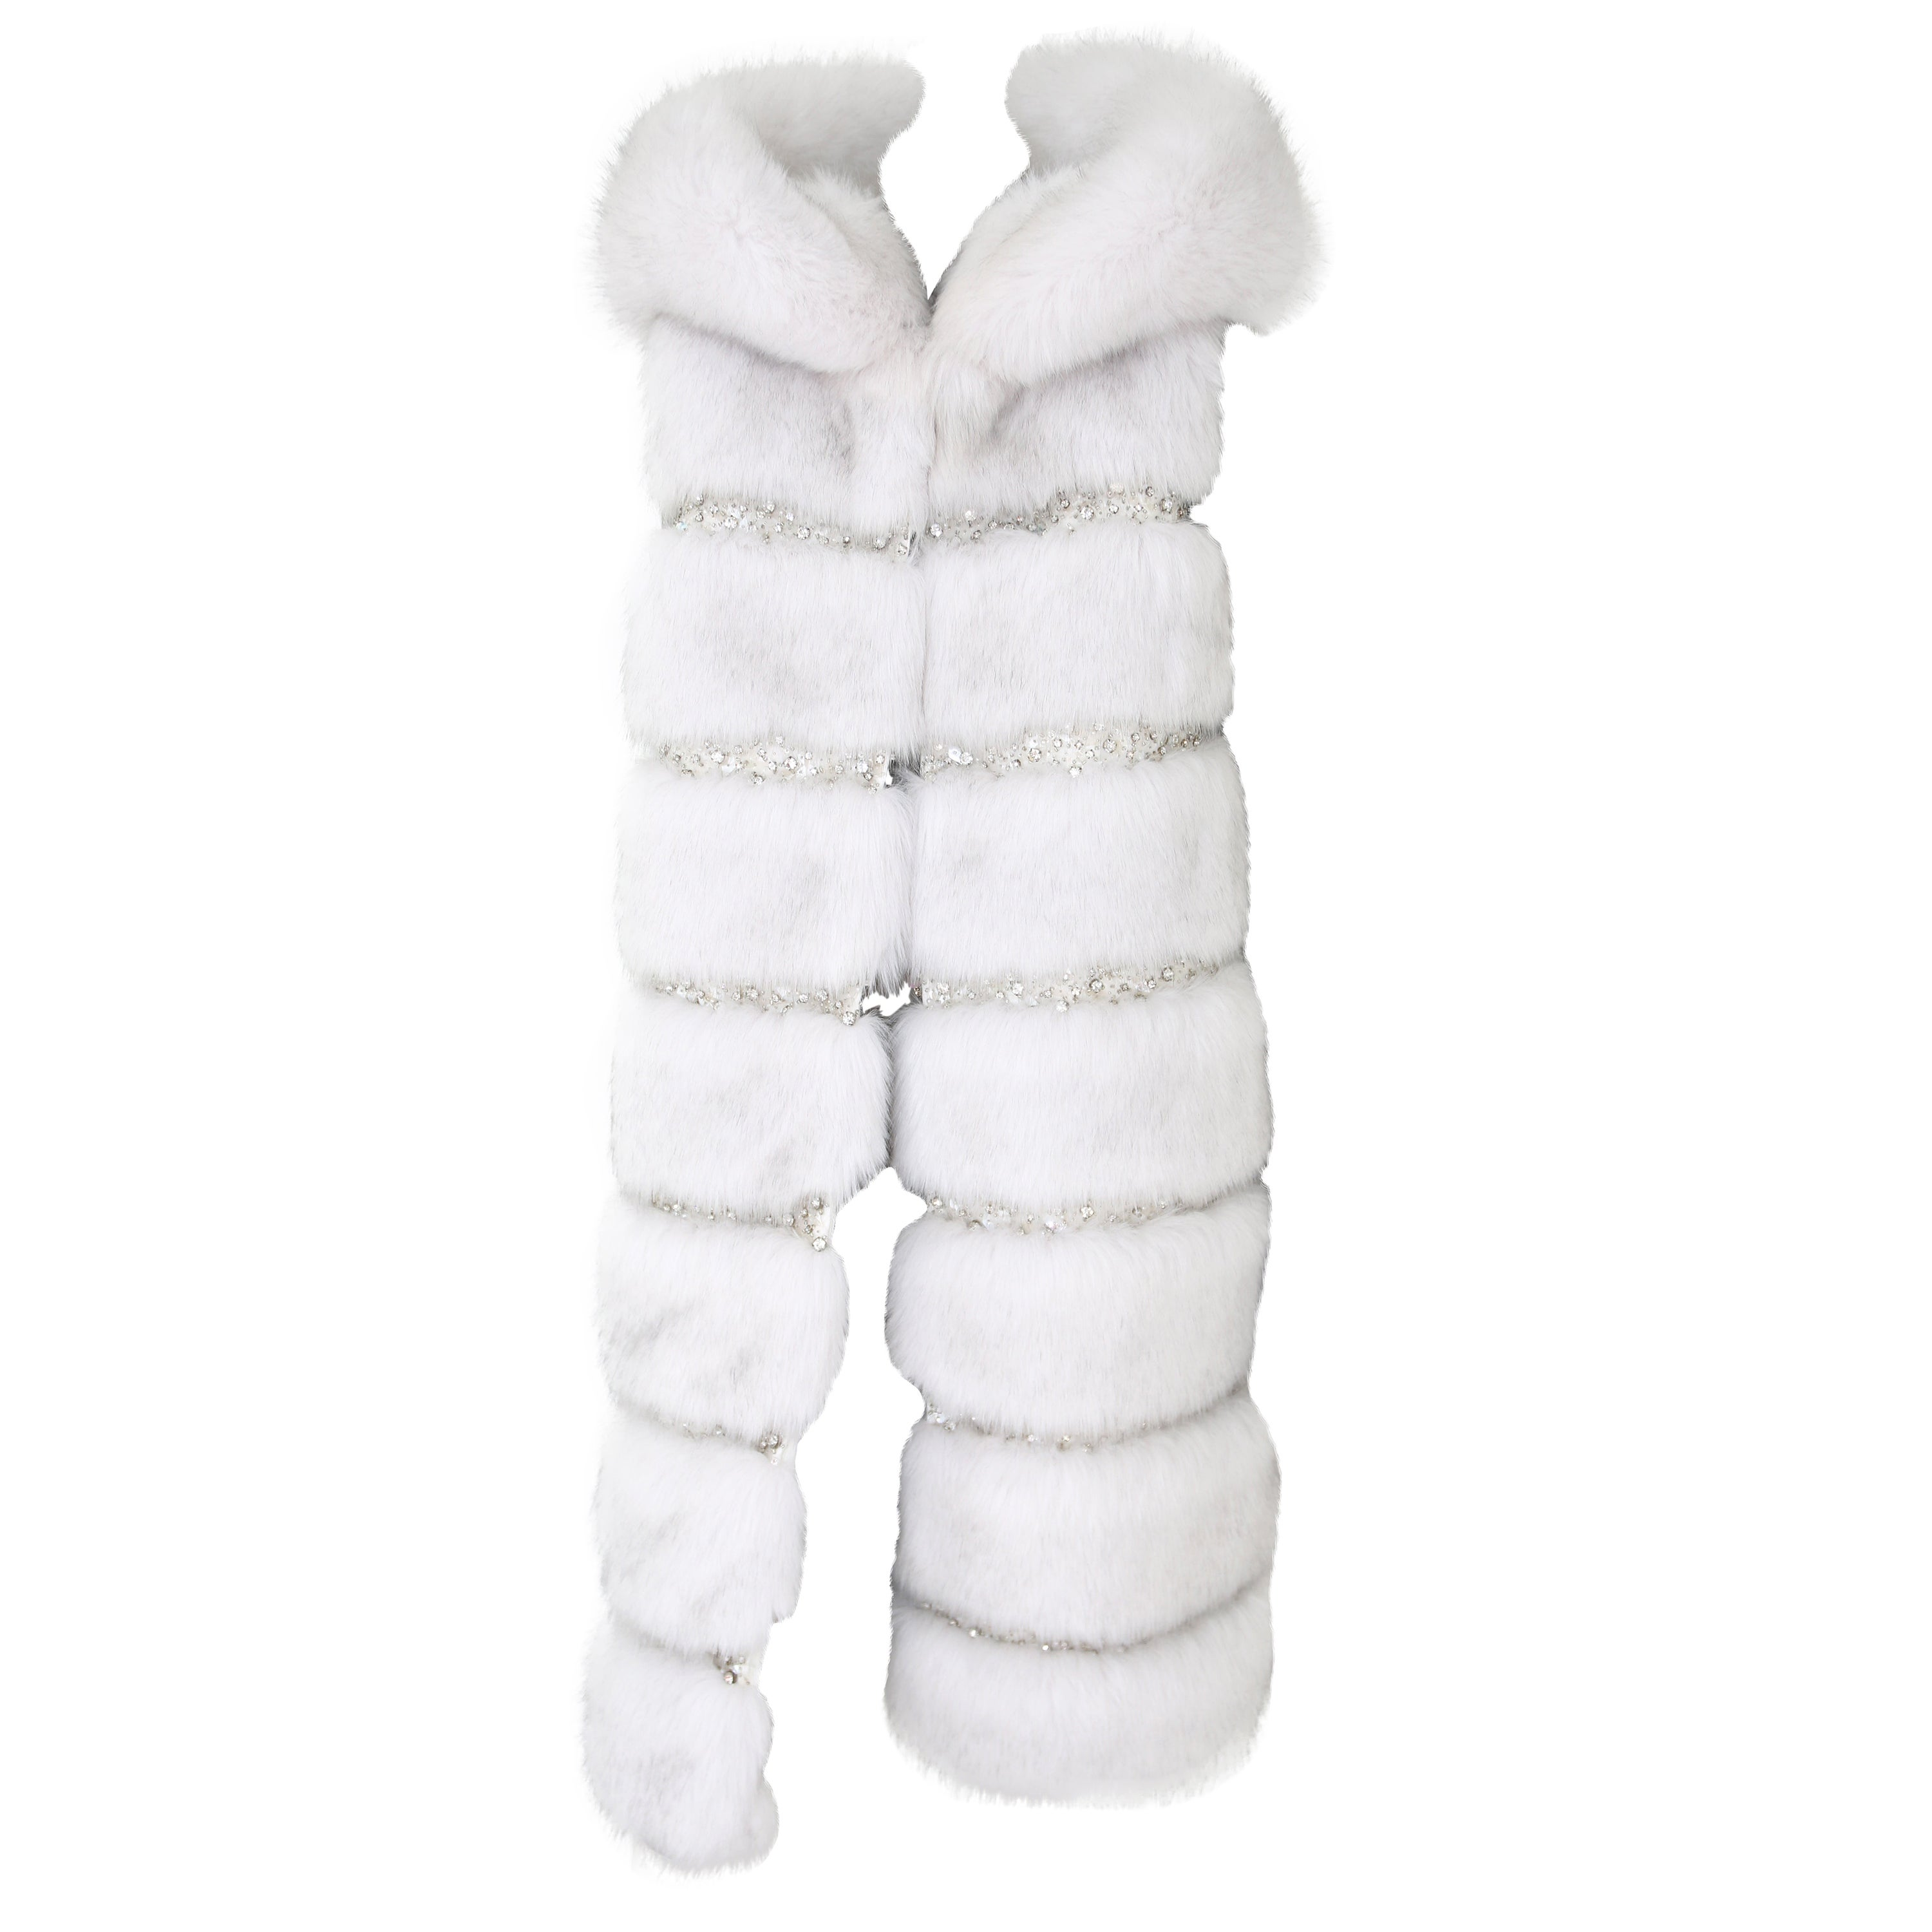 Pelush White Faux Fur Fox Vest With Crystal Embroidery And Detachable Hood - S